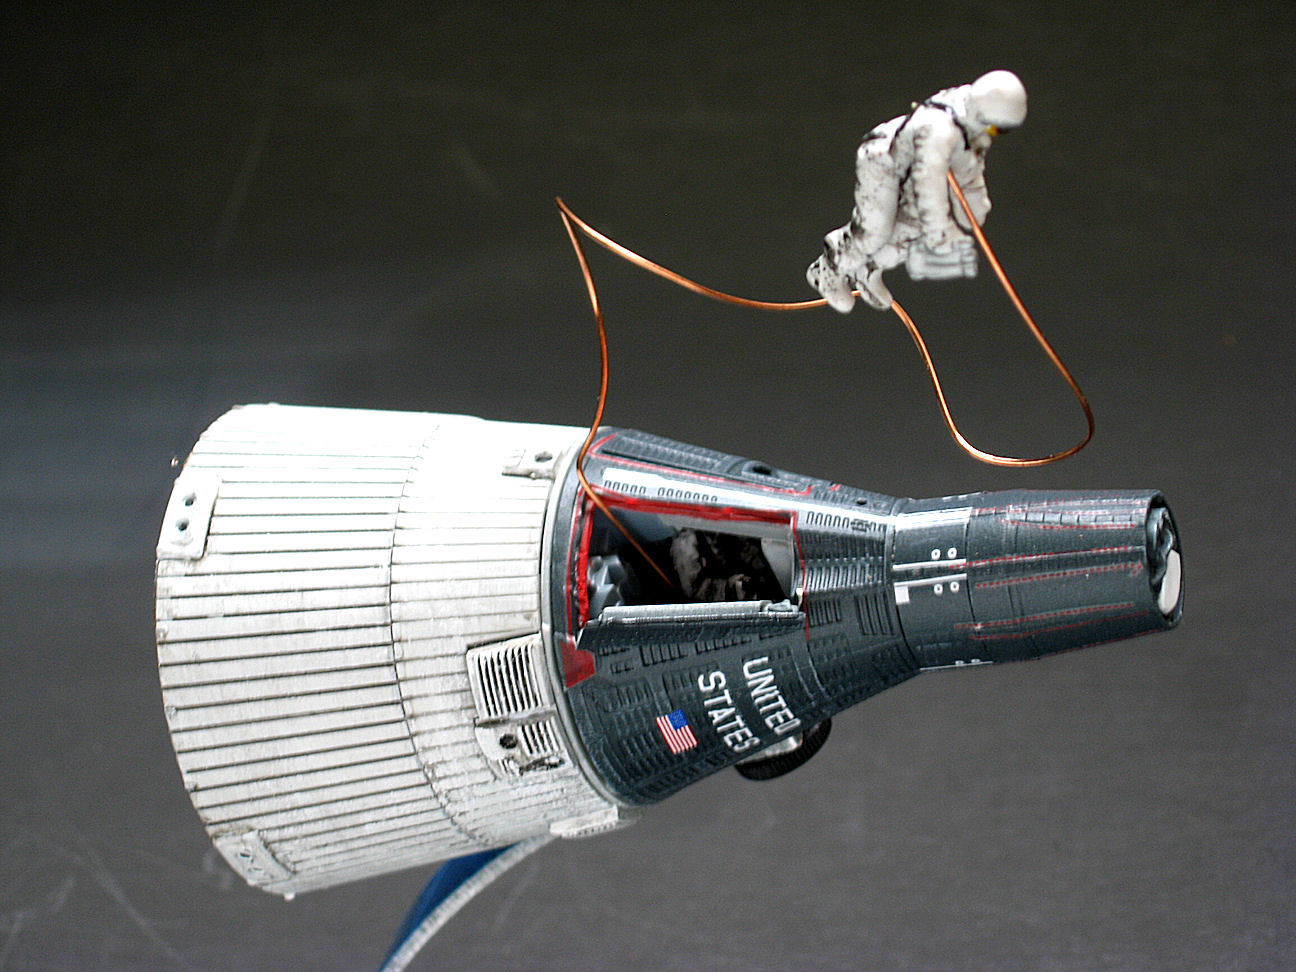 spacecraft gemini - photo #19